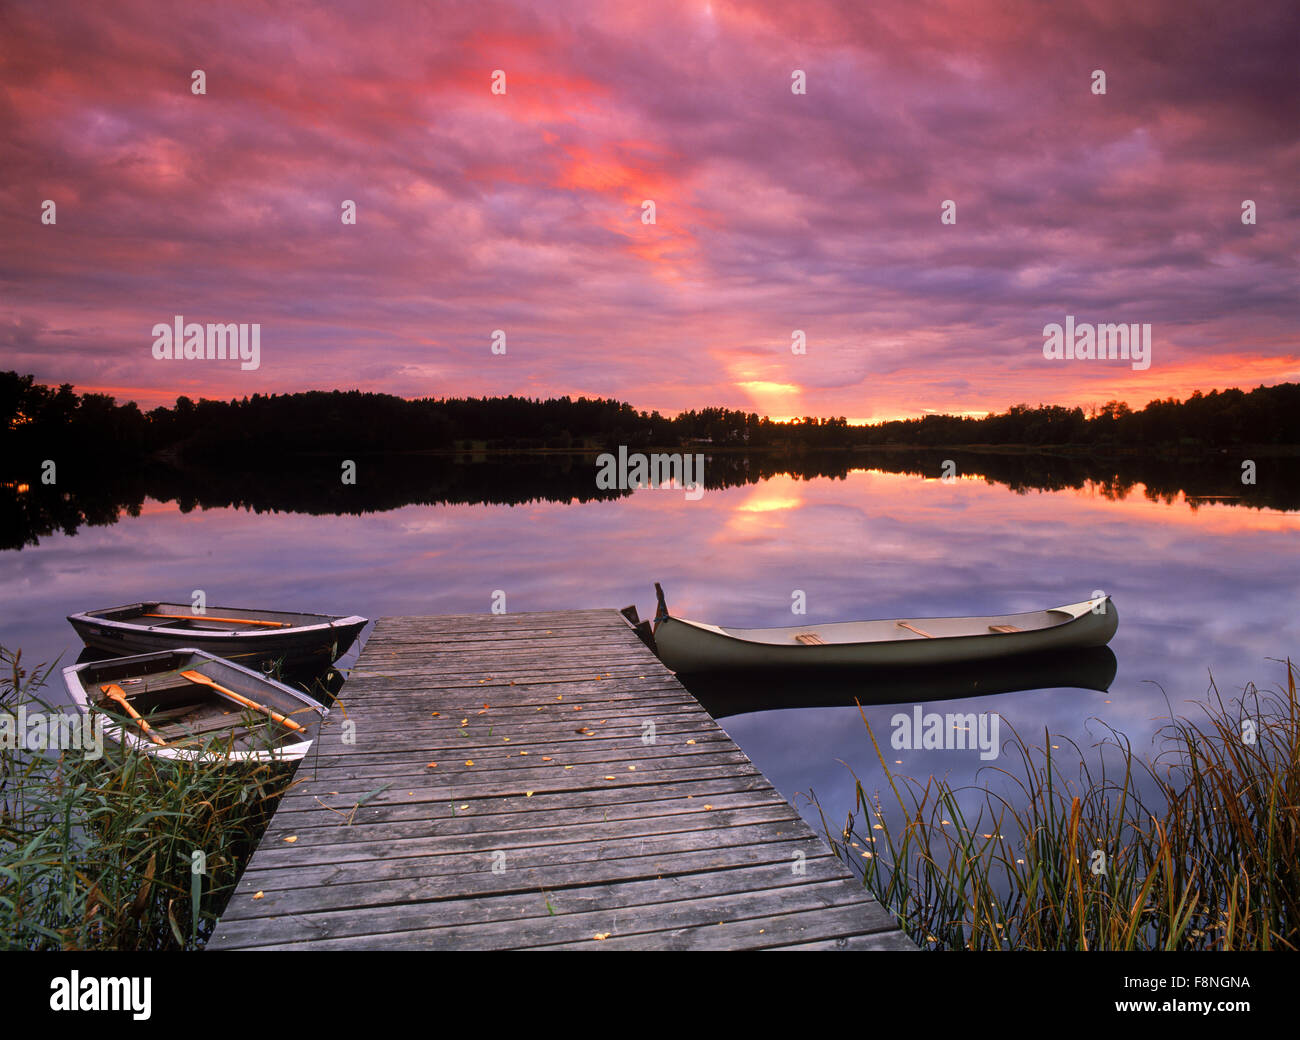 Canoe tied to lakeside dock at sunset in Sweden near town of Flen - Stock Image